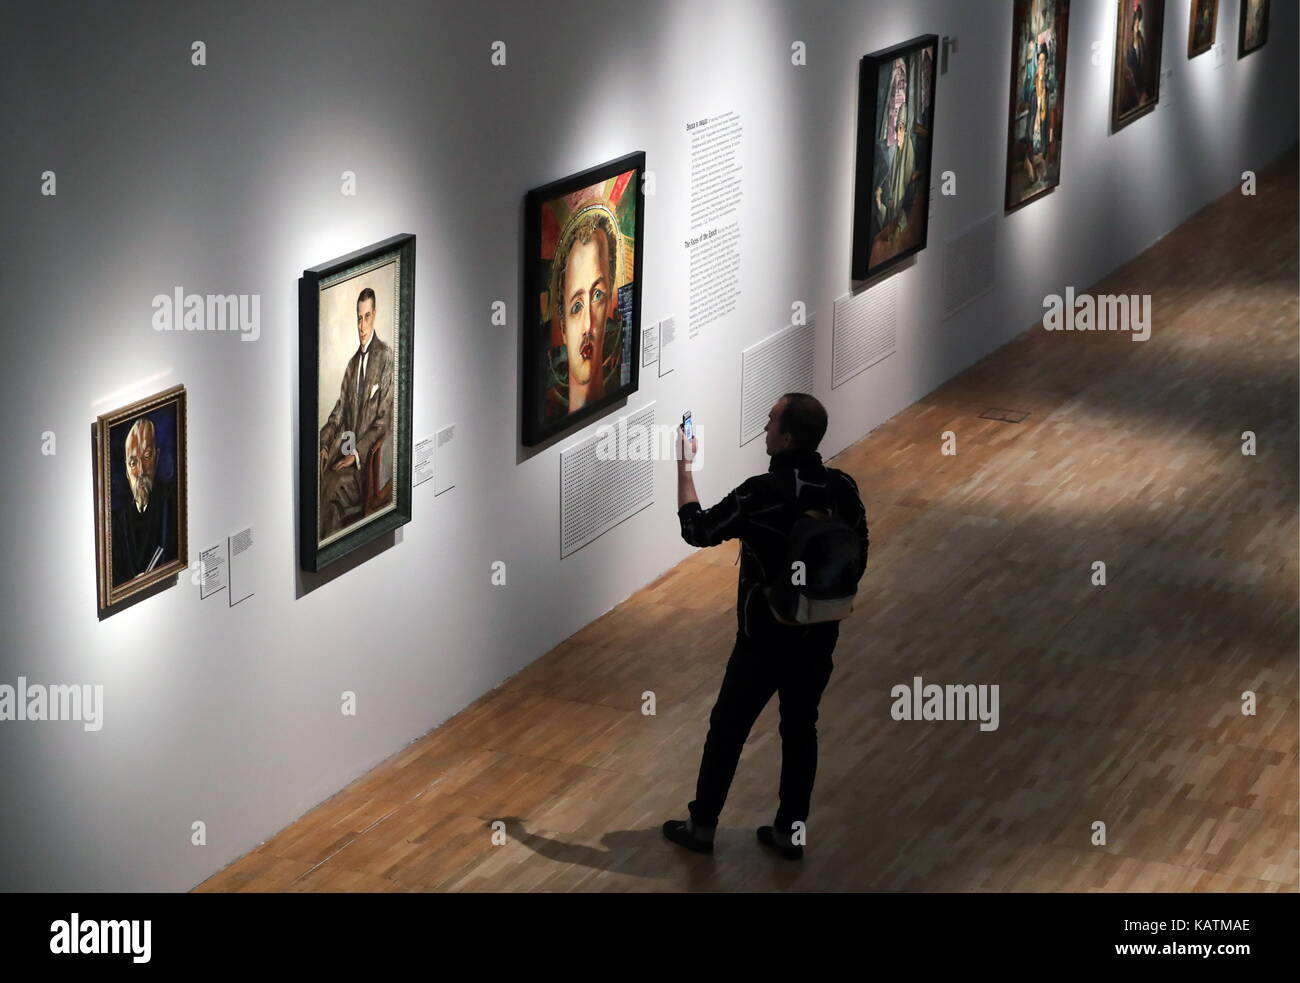 MOSCOW, RUSSIA - SEPTEMBER 27, 2017: A visitor takes a picture at the Someone 1917 exhibition at the Tretyakov Gallery. Stock Photo